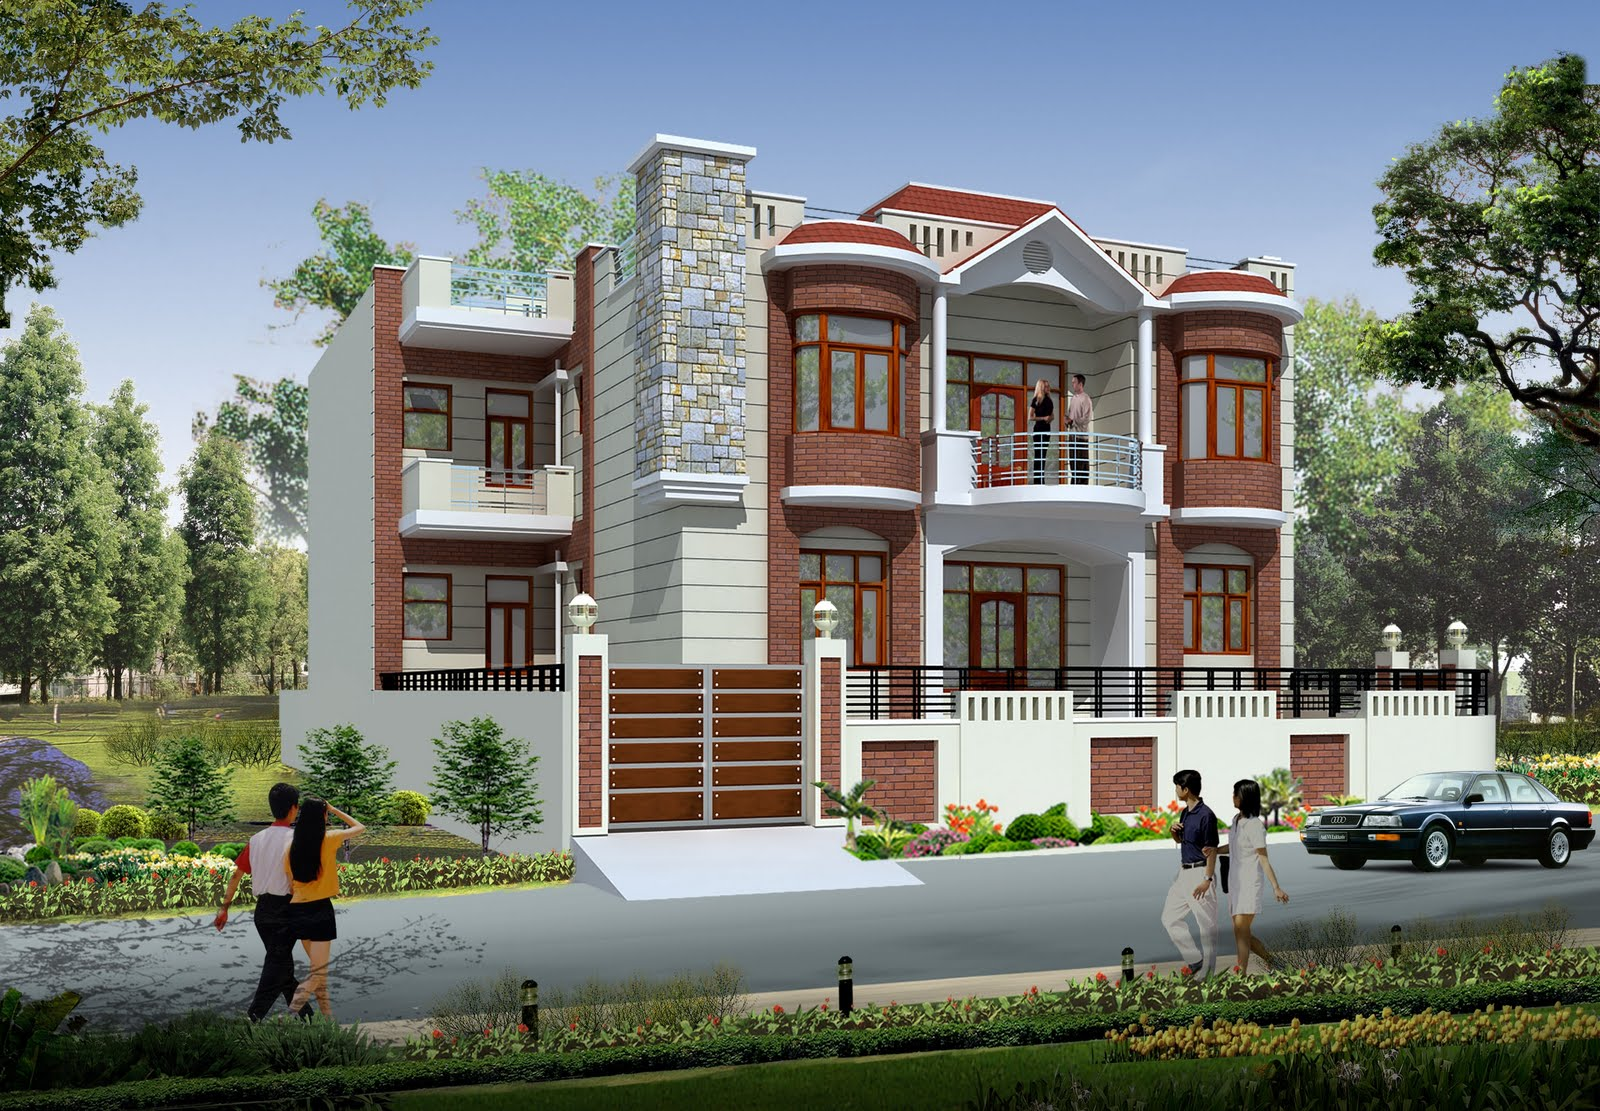 House design solution ideas 3d front elevation of house in for House building front design